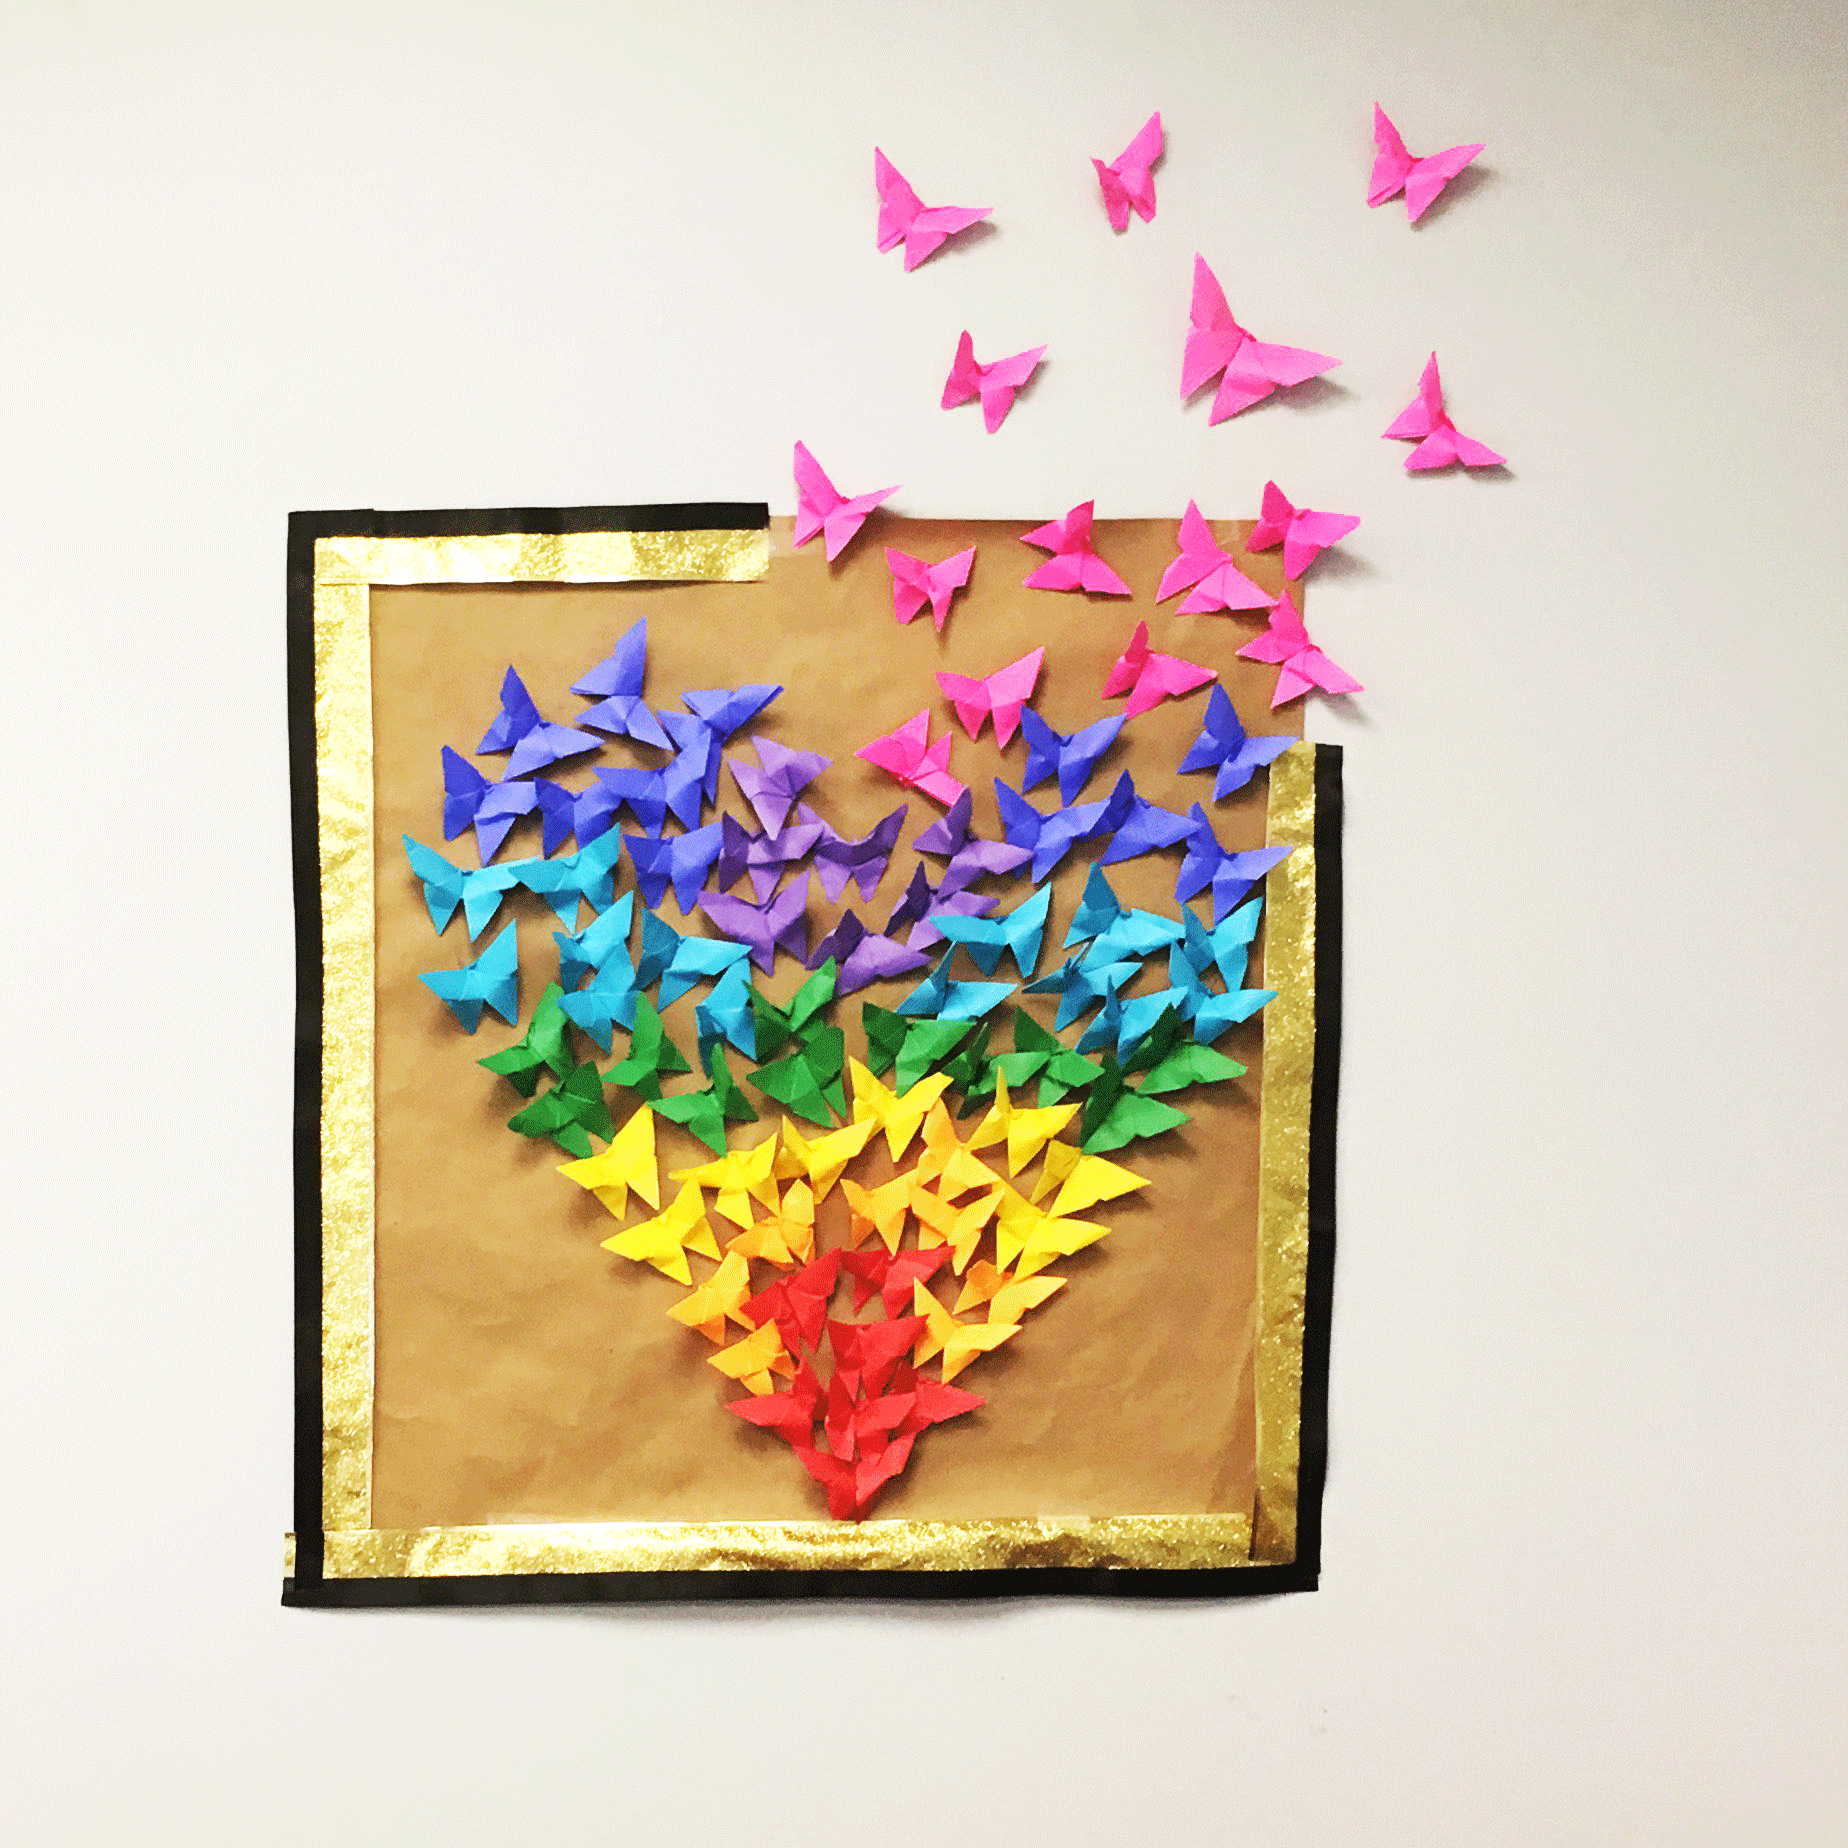 Cool Paper Butterfly Heart Wall Art Jam Blog For Decoration With Ribbons Nar